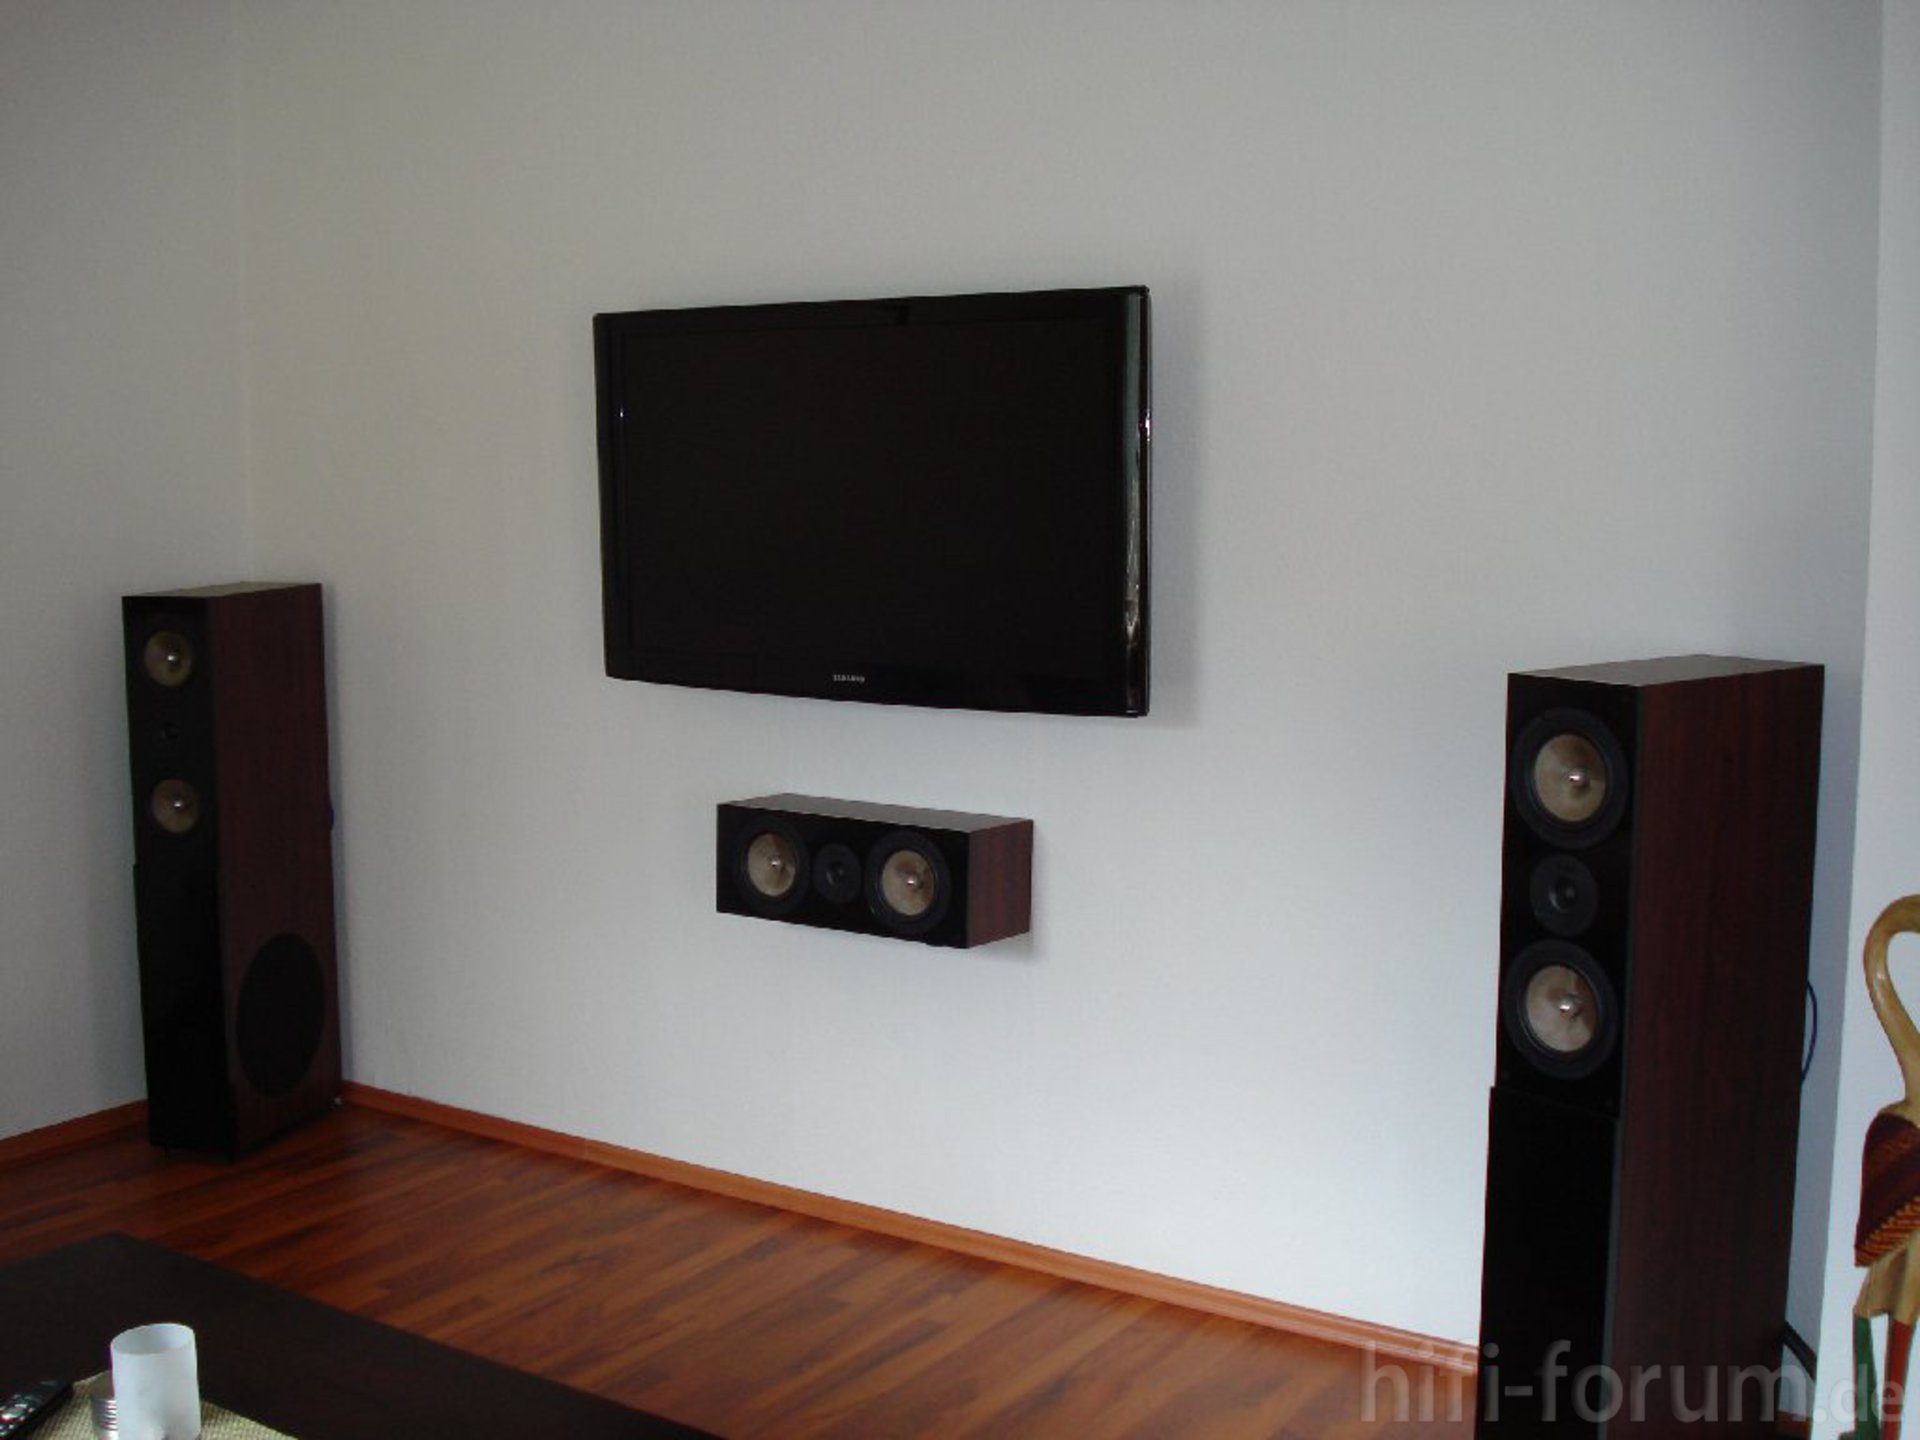 yarialcom kabel verstecken bei tv wandmontage. Black Bedroom Furniture Sets. Home Design Ideas